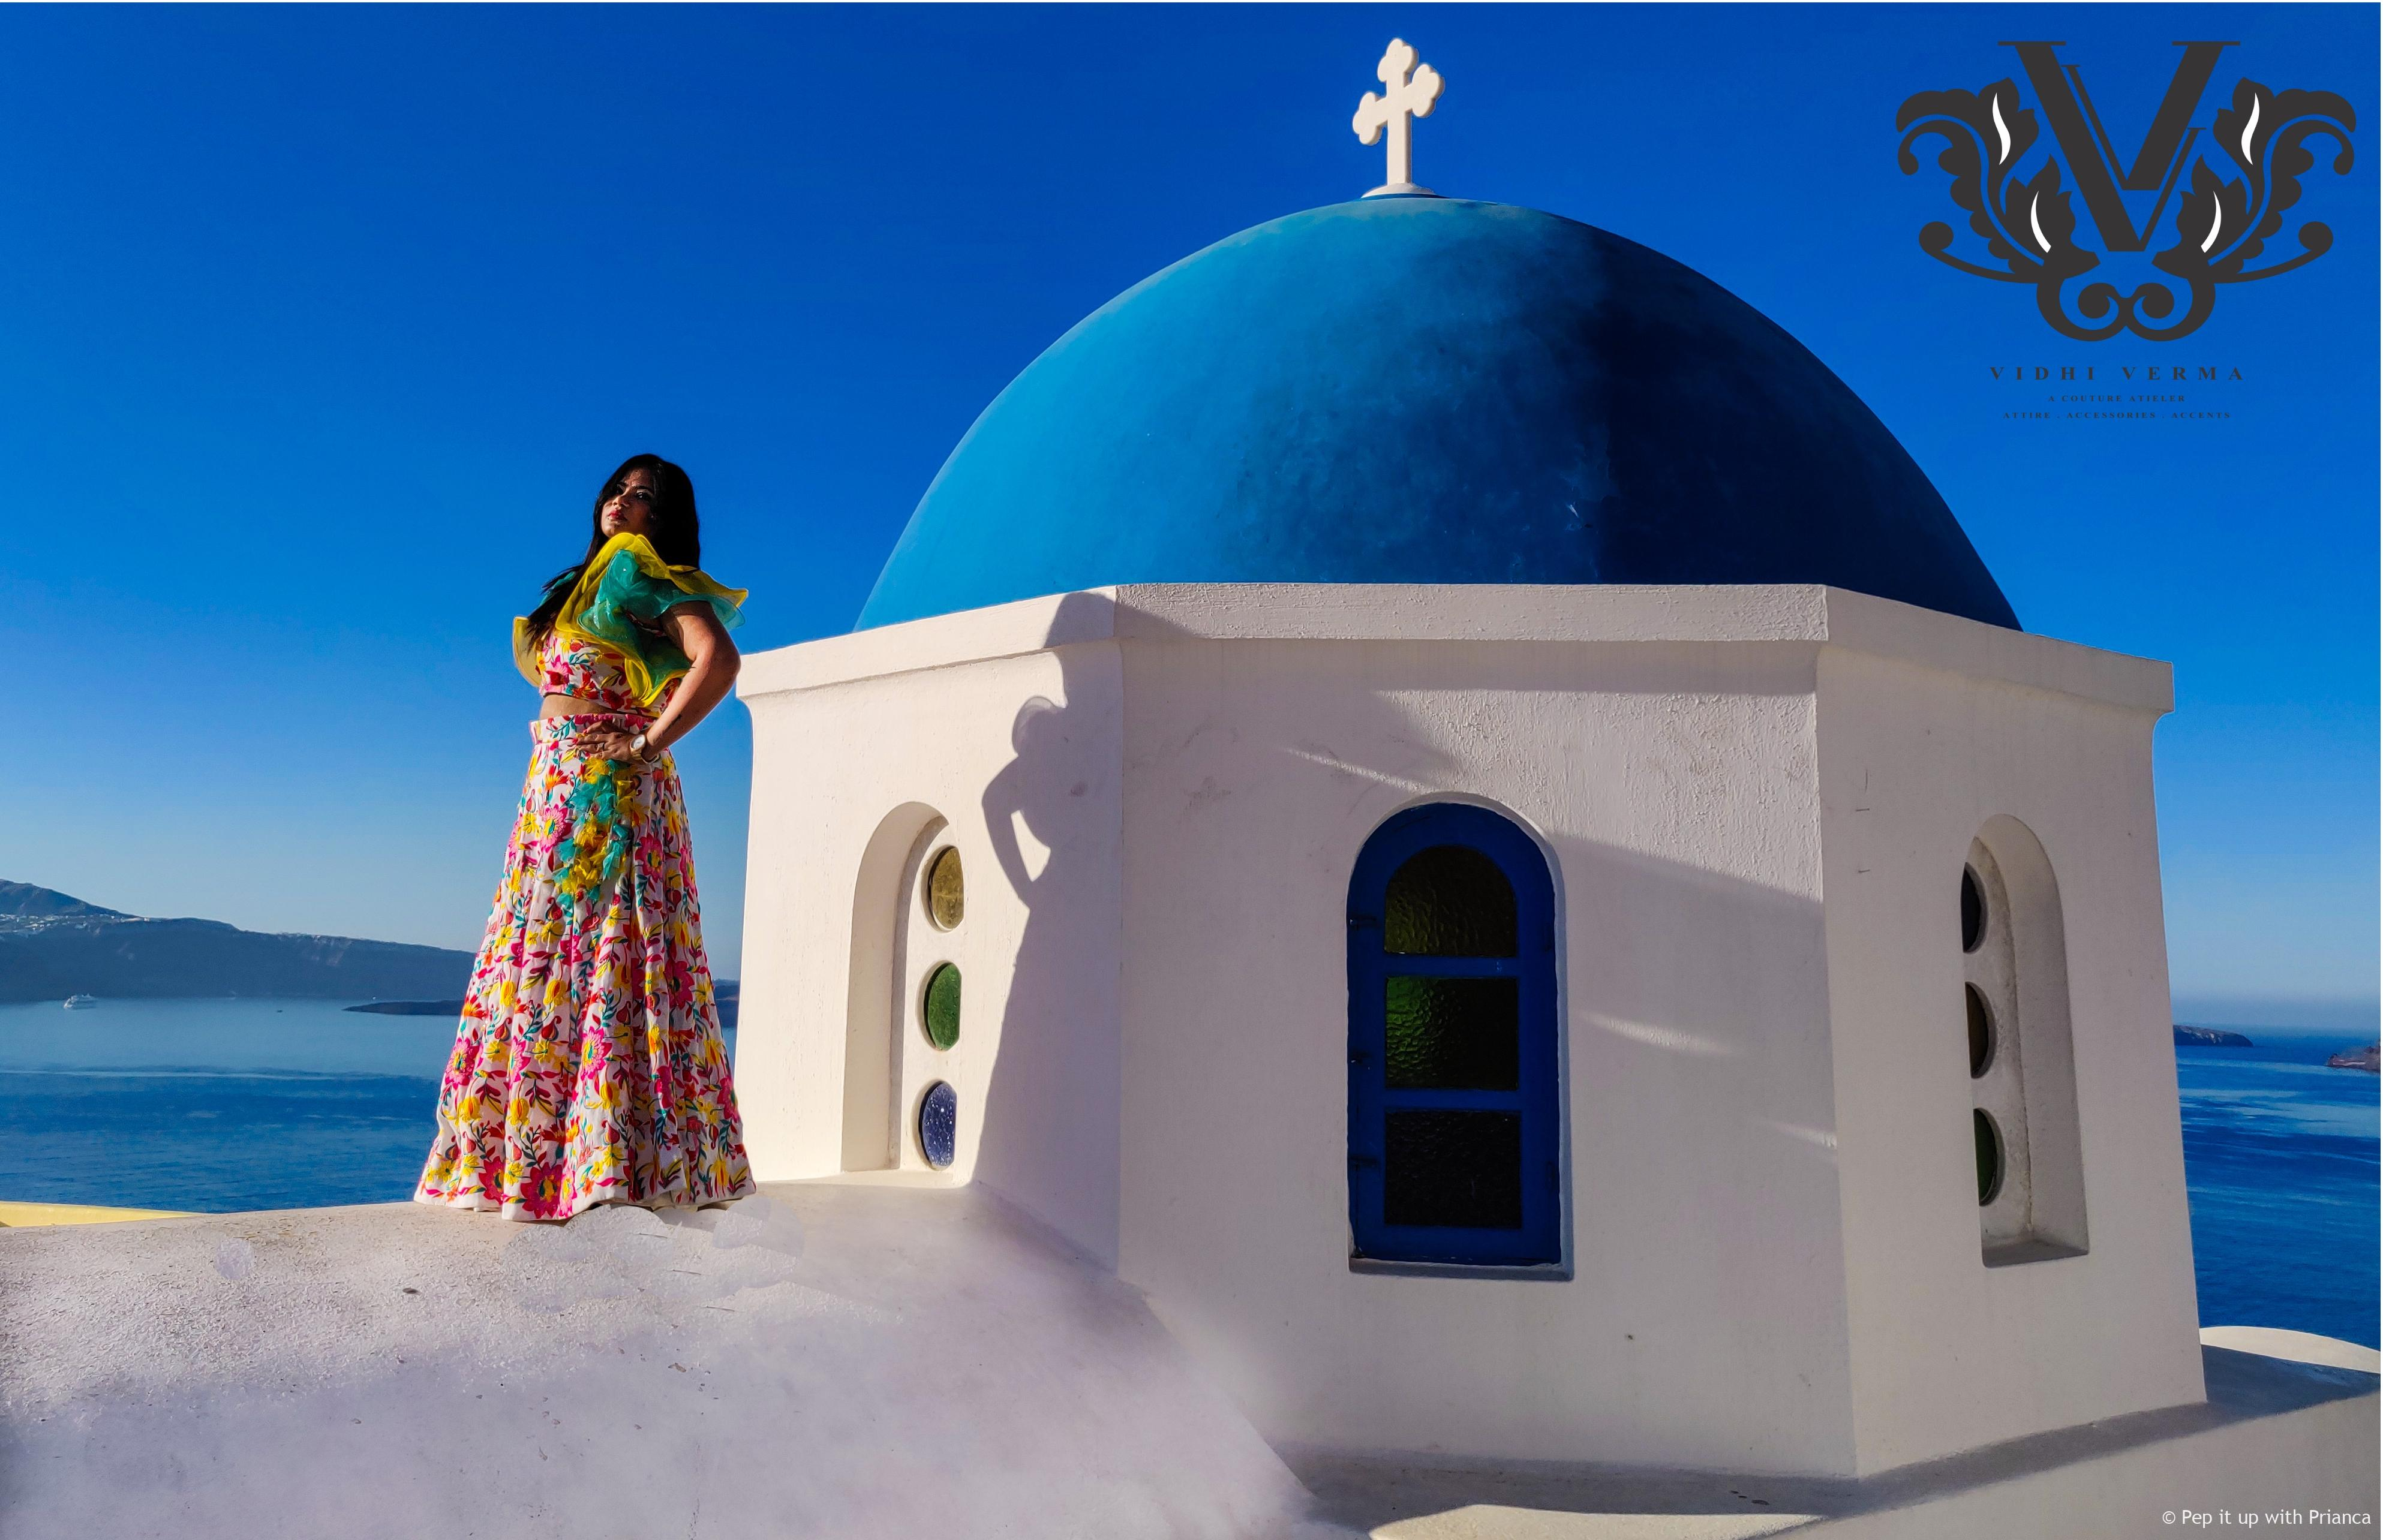 Vidhi Verma Santorini High and mighty shoot  - Exclusive Interview with Celebrity Fashion Designer Vidhi Verma - Get Inspired from her Successful Journey